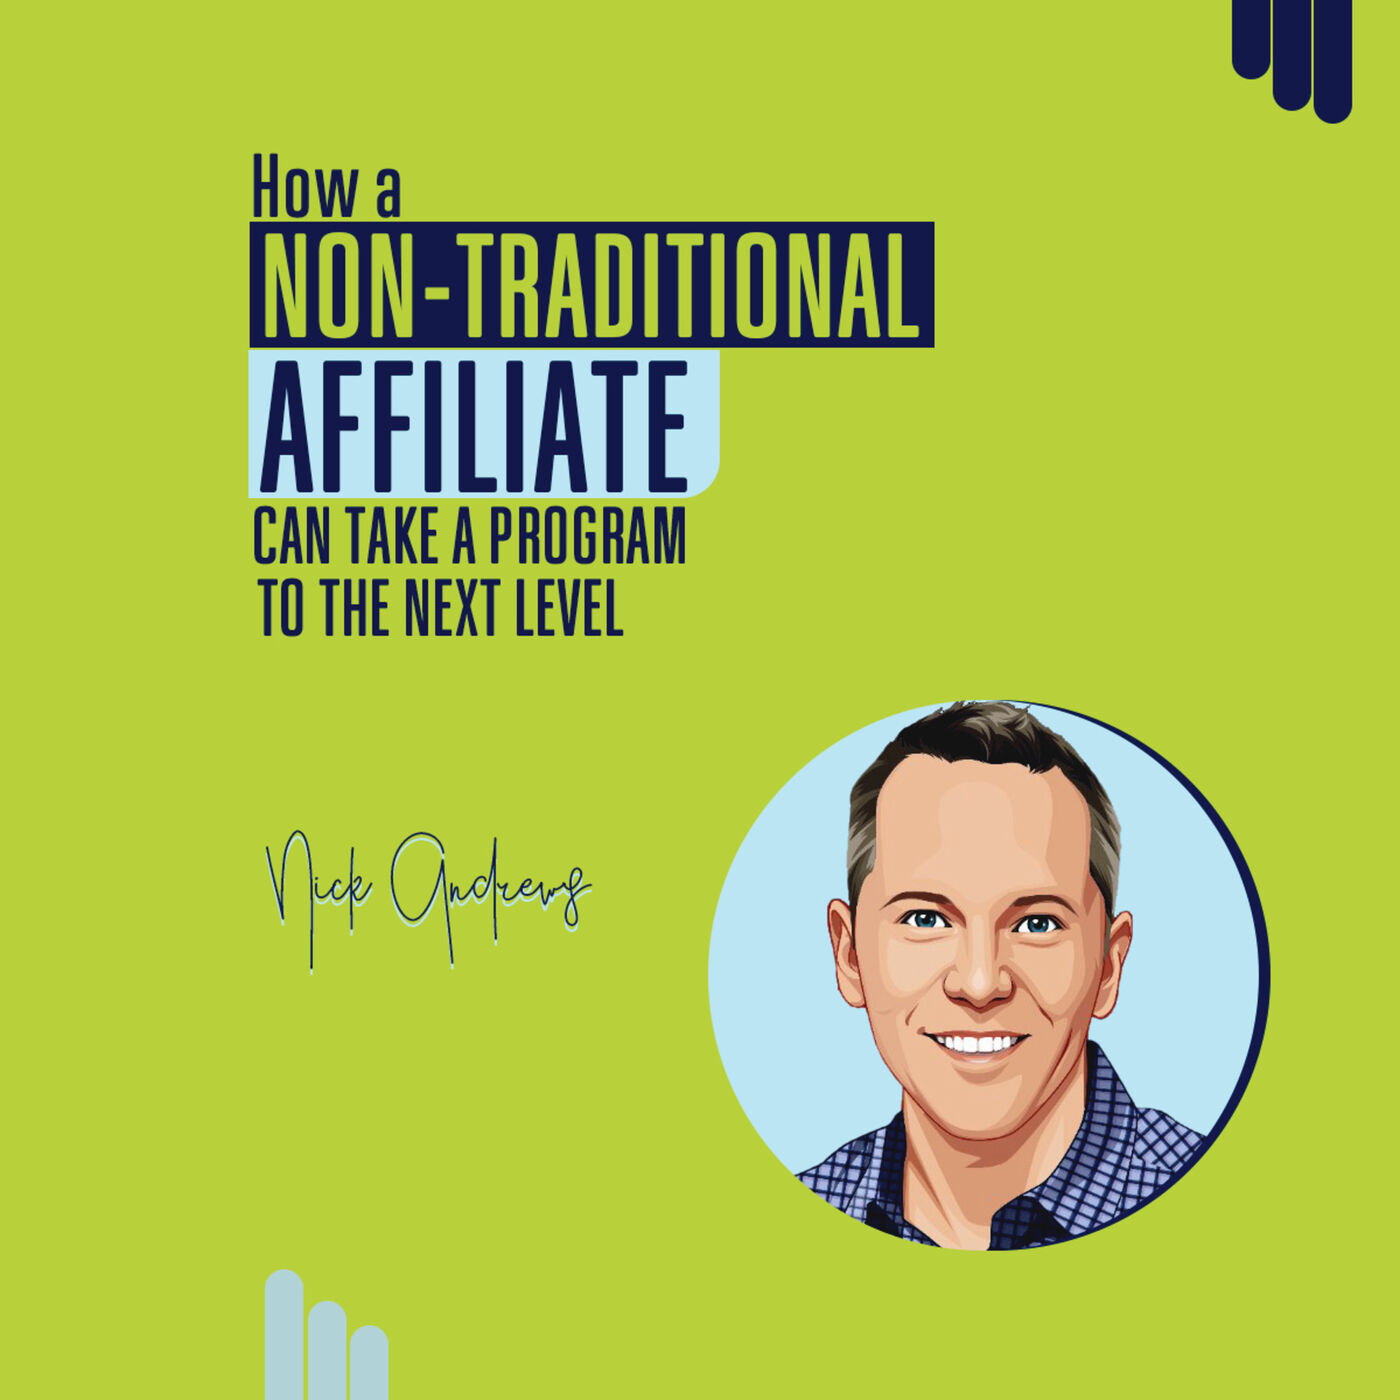 How a Non-Traditional Affiliate can take a Program to the Next Level